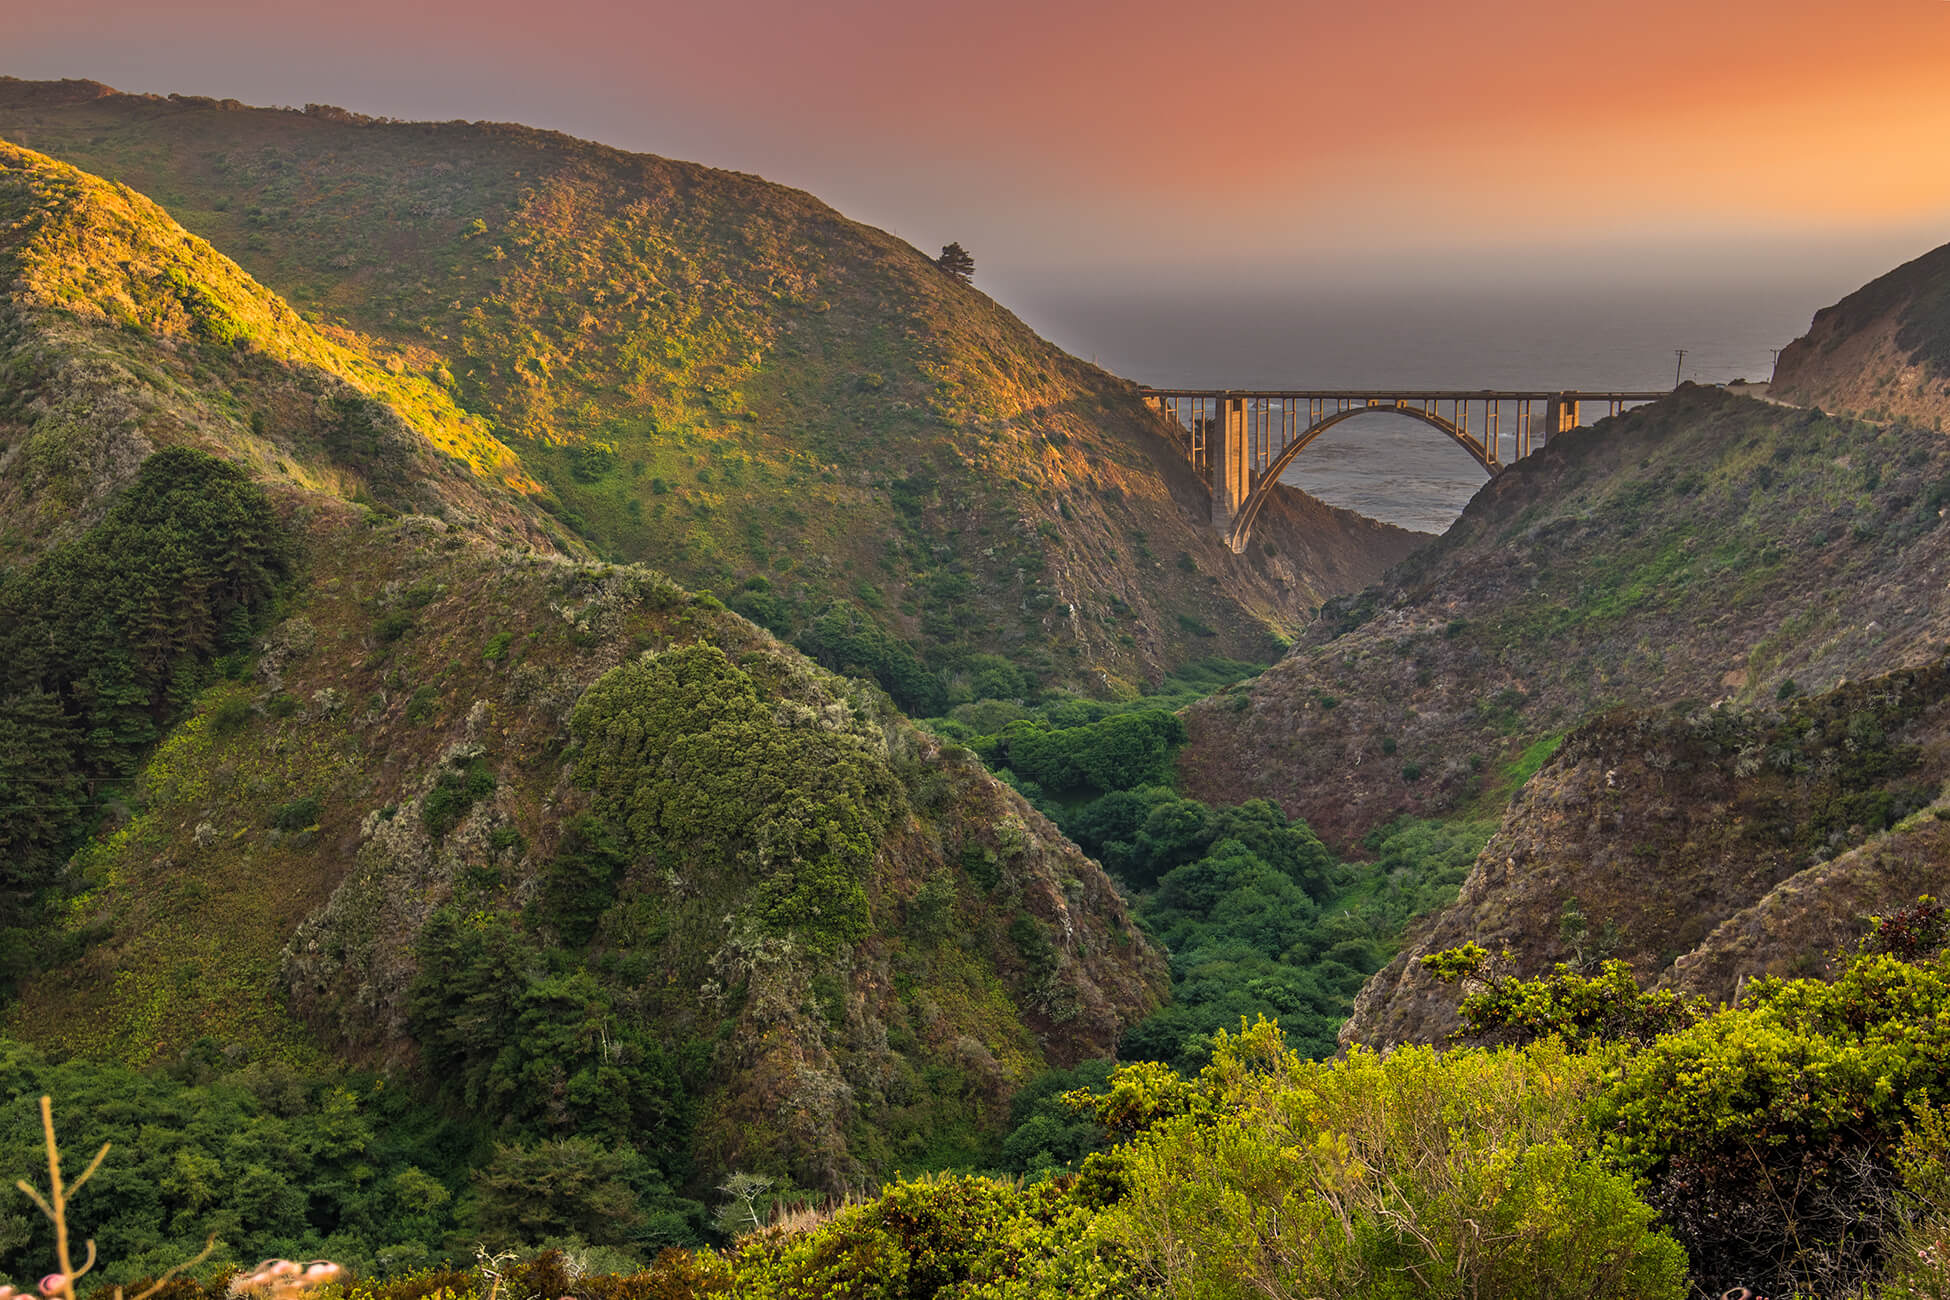 Bixby Bridge Sunset - Big Sur